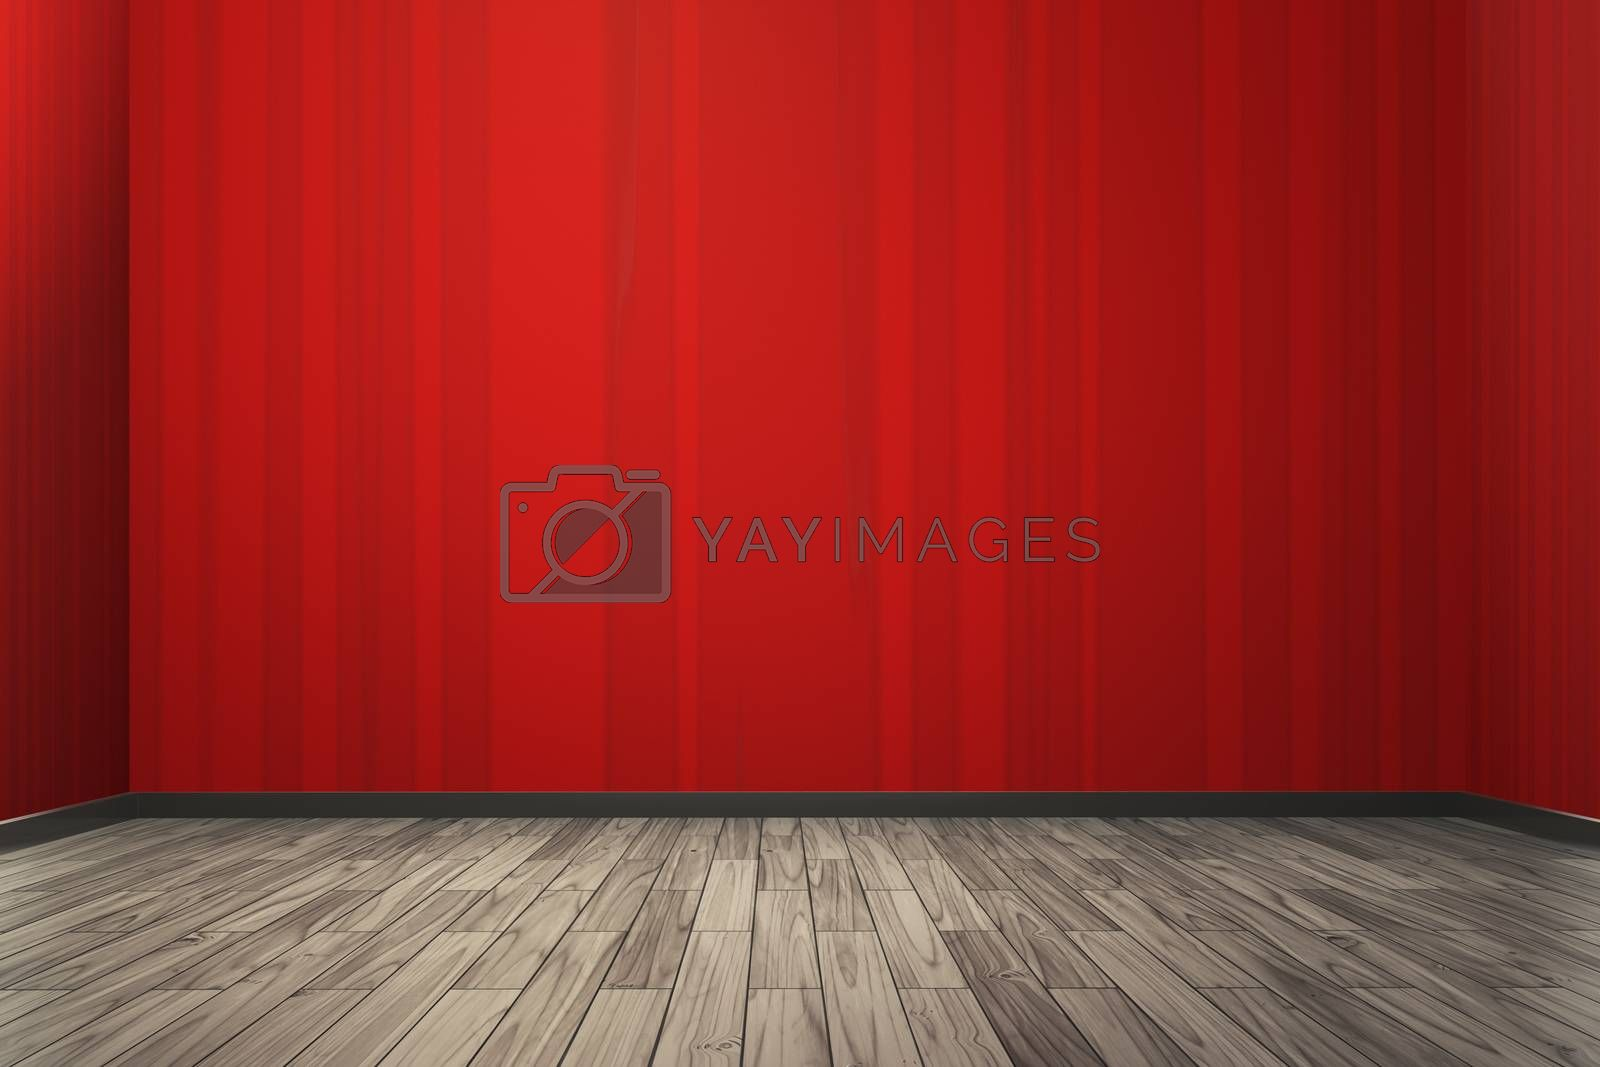 An image of a nice floor for your content 3d illustration